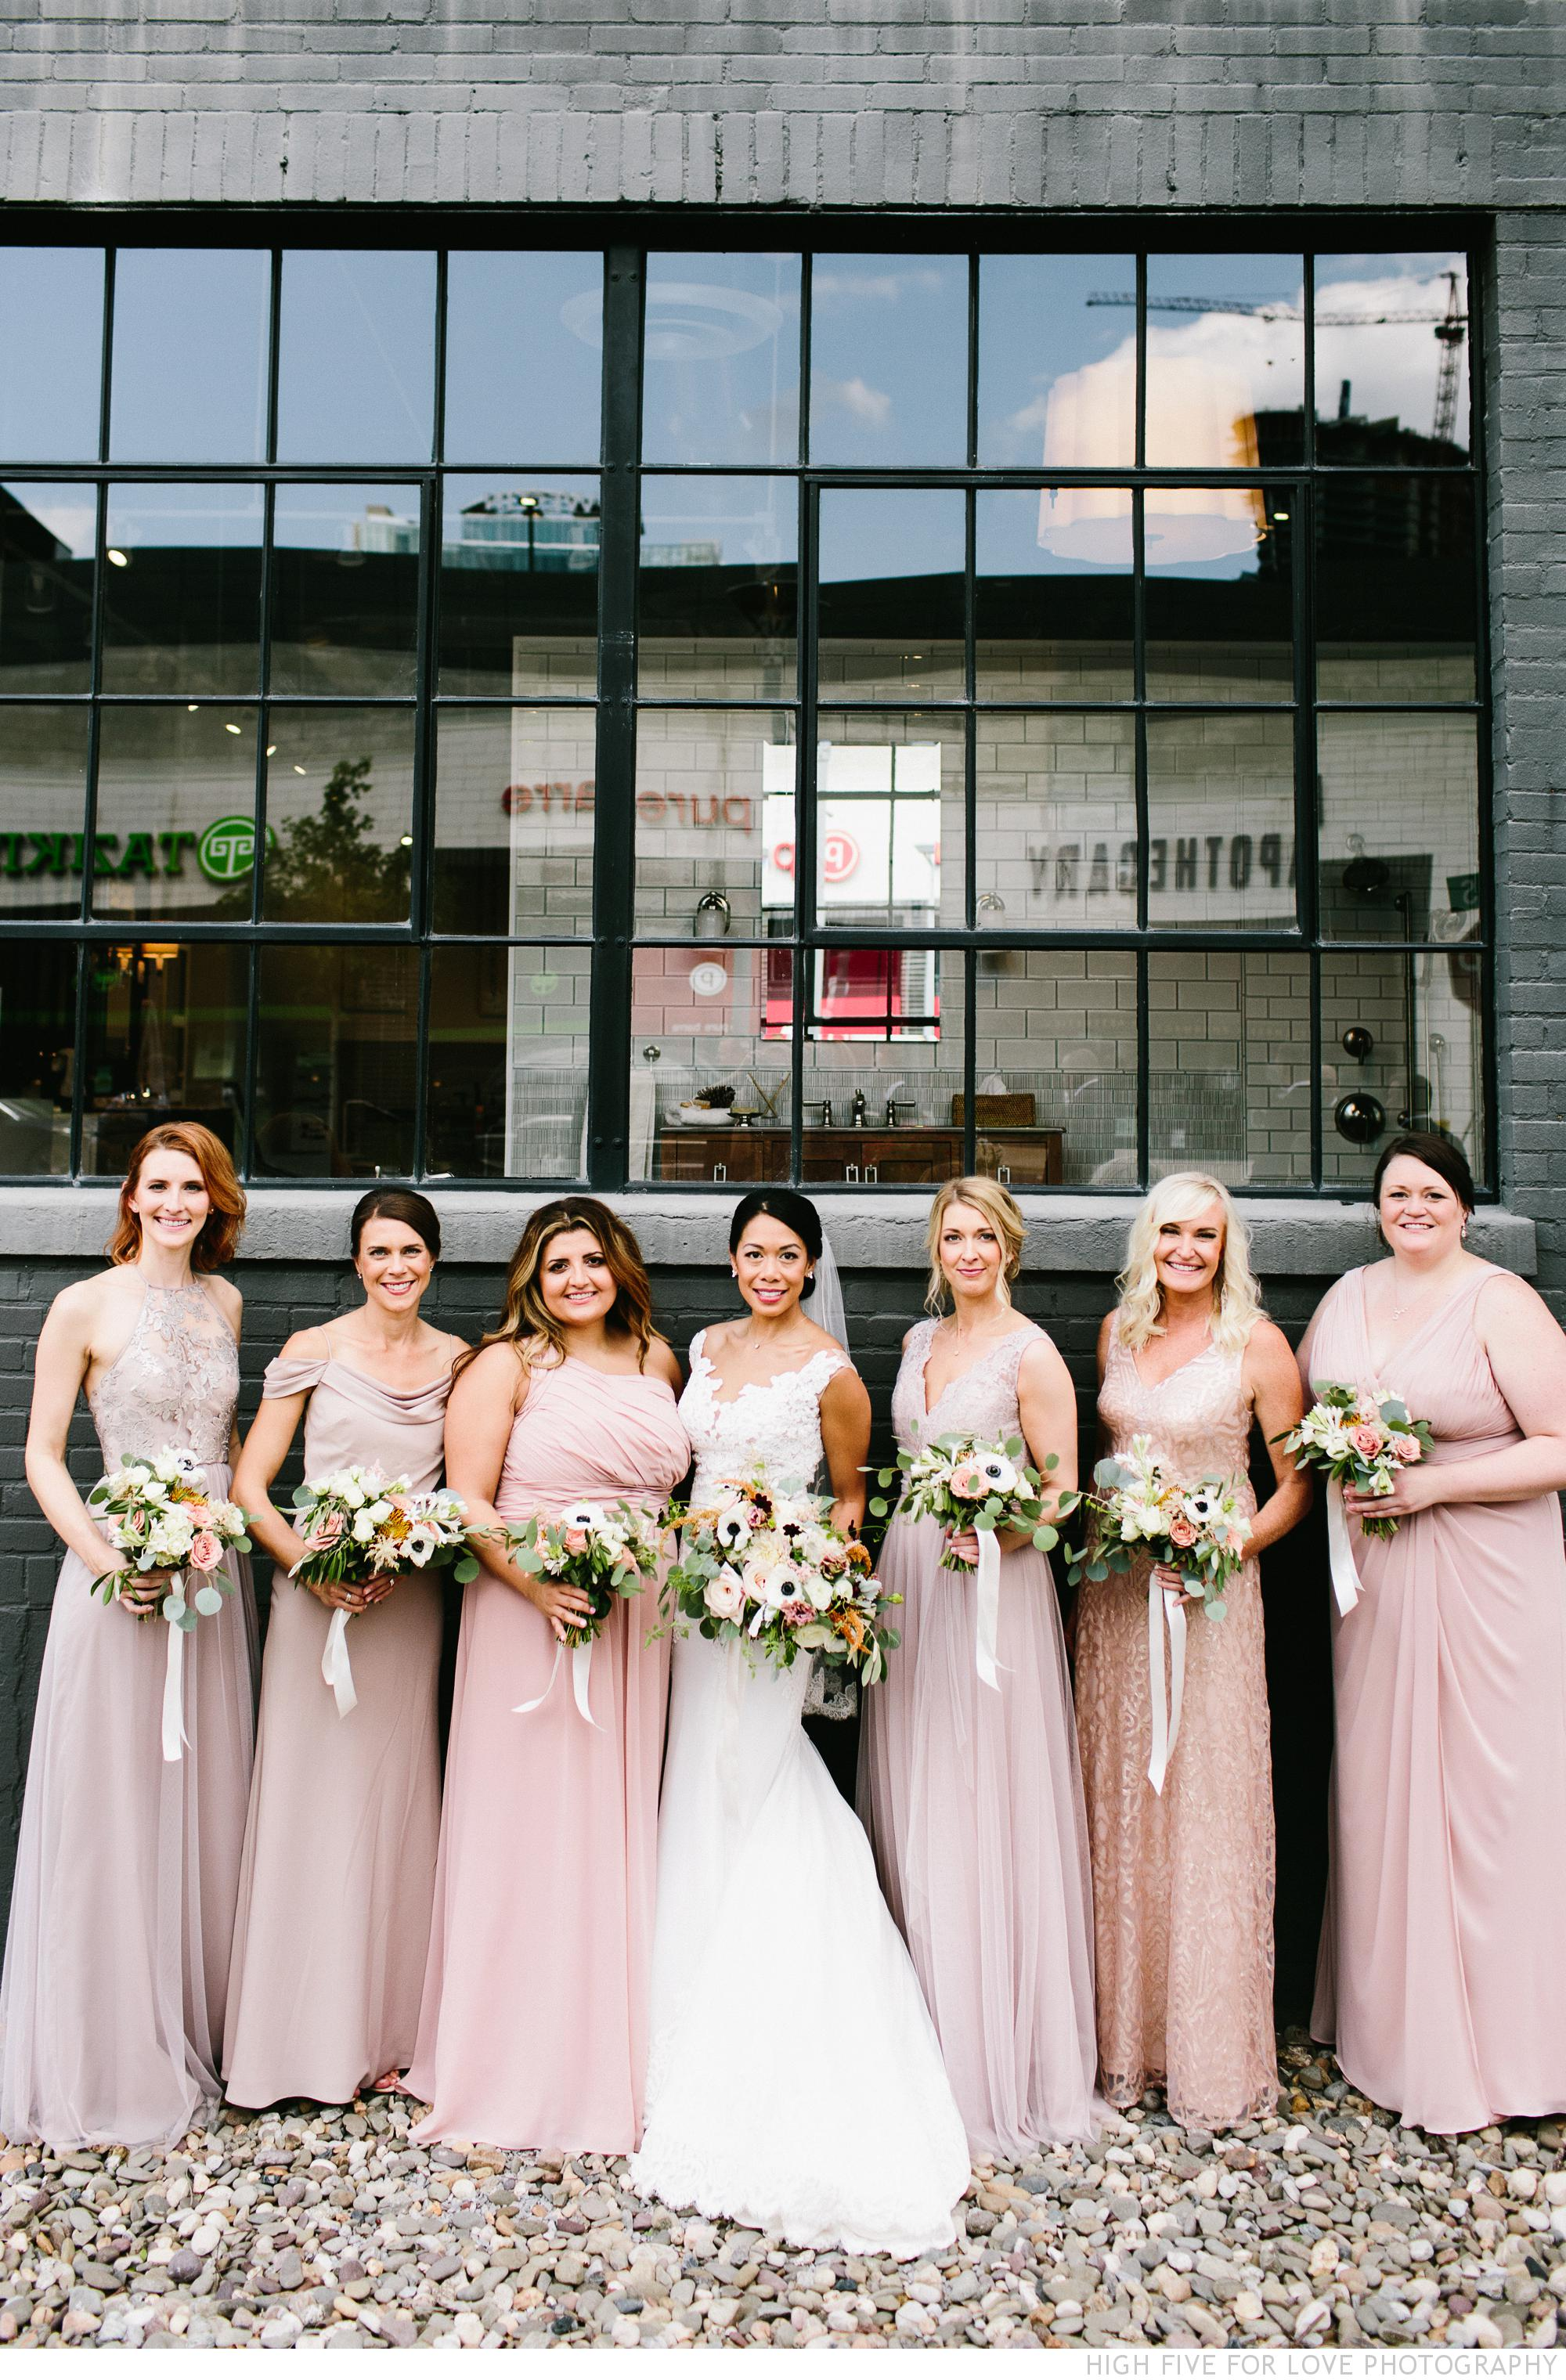 Amy and her bridesmaids